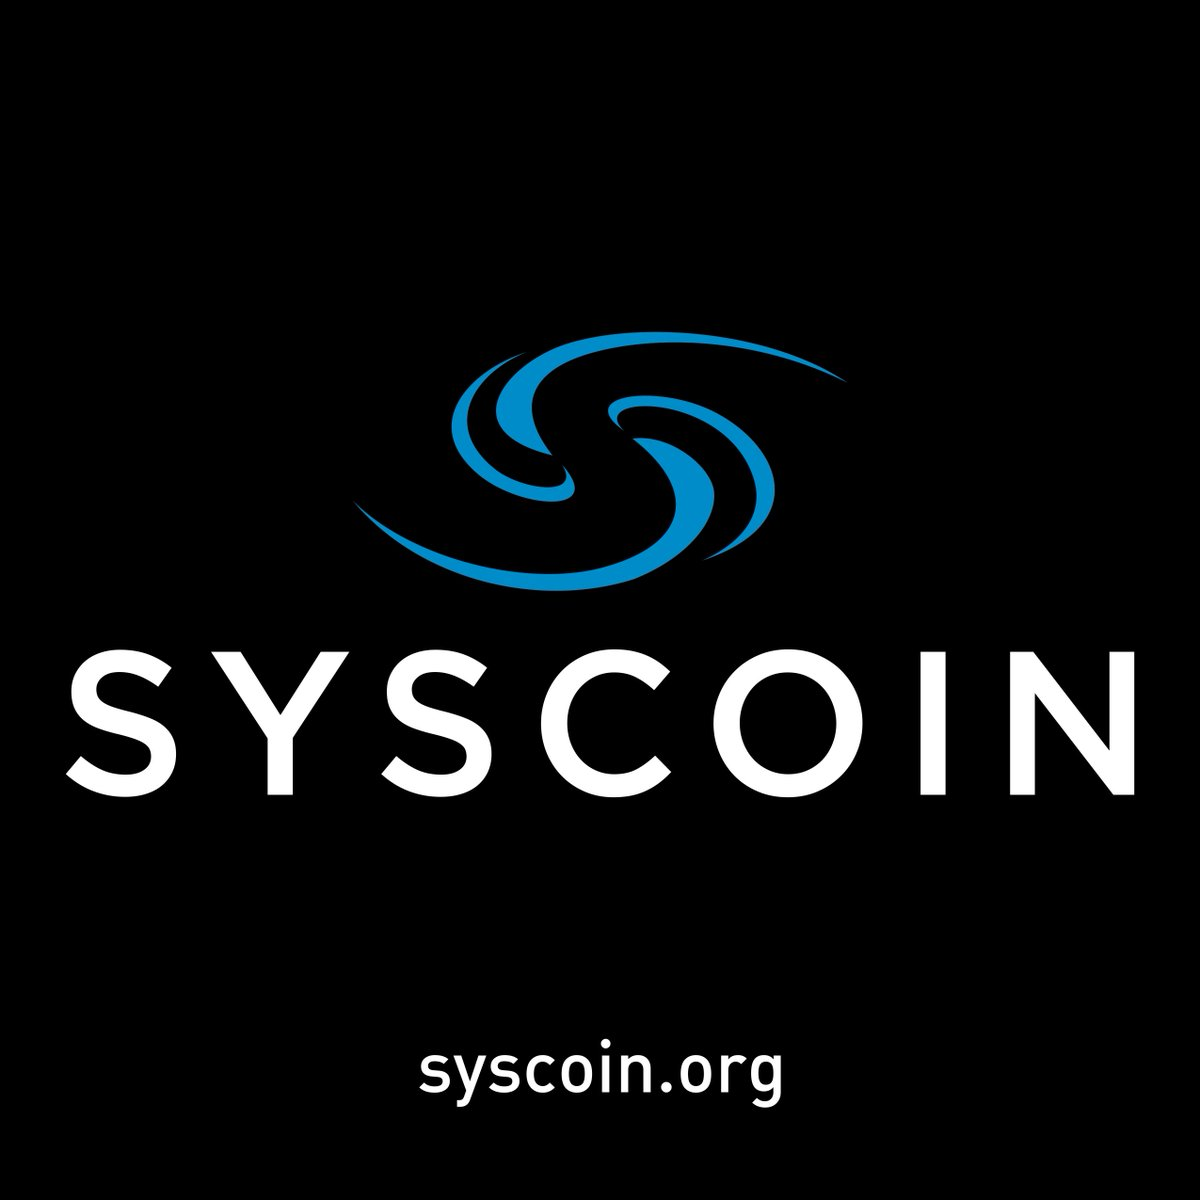 Syscoin On Twitter As A Precaution We